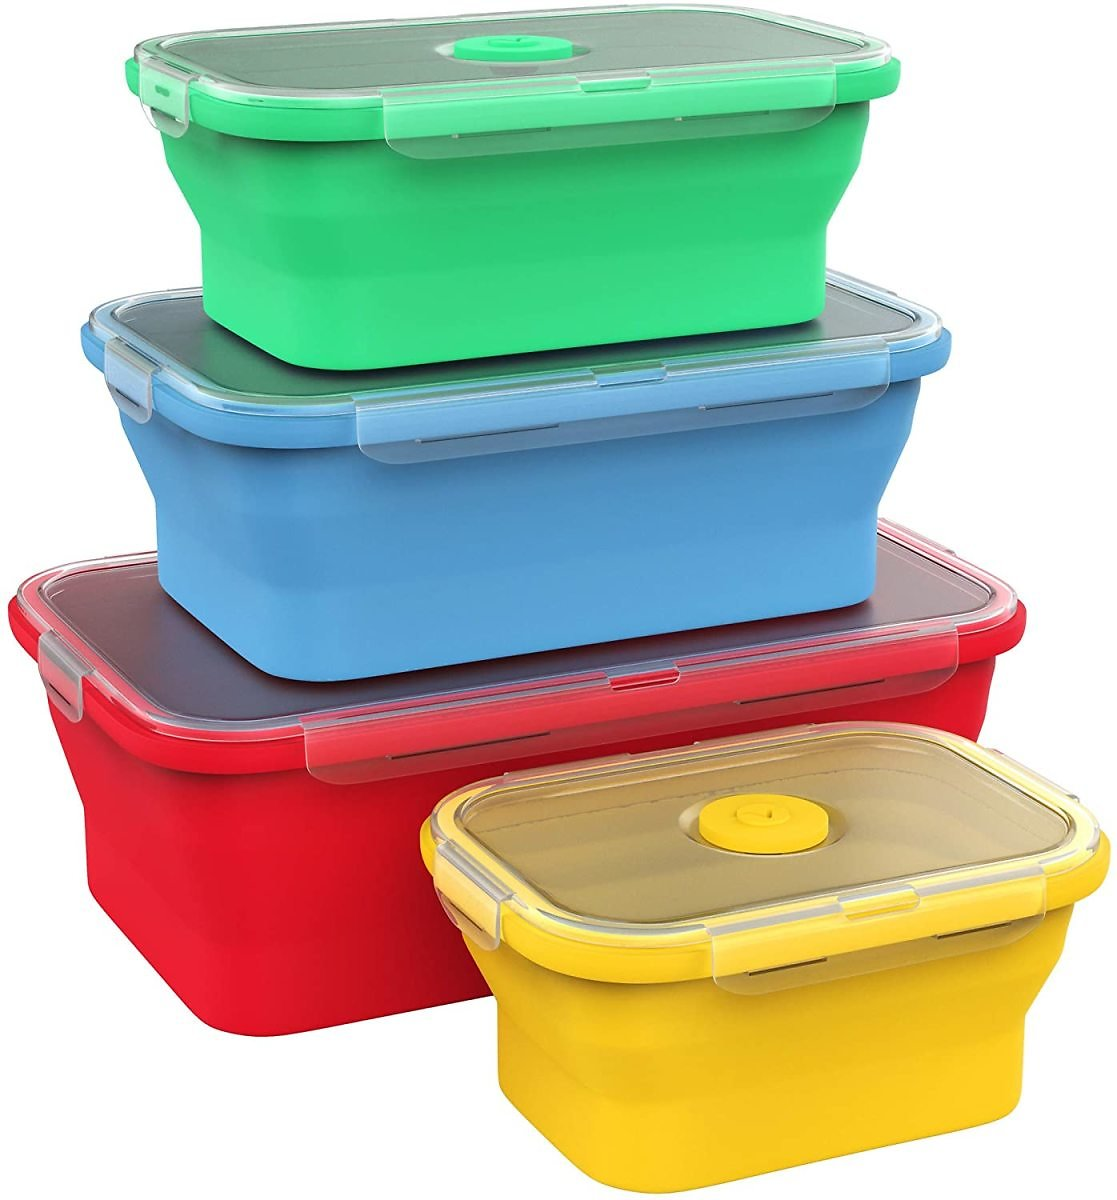 Vremi Collapsible Silicone Food Storage Containers with BPA Free Airtight Plastic Lids